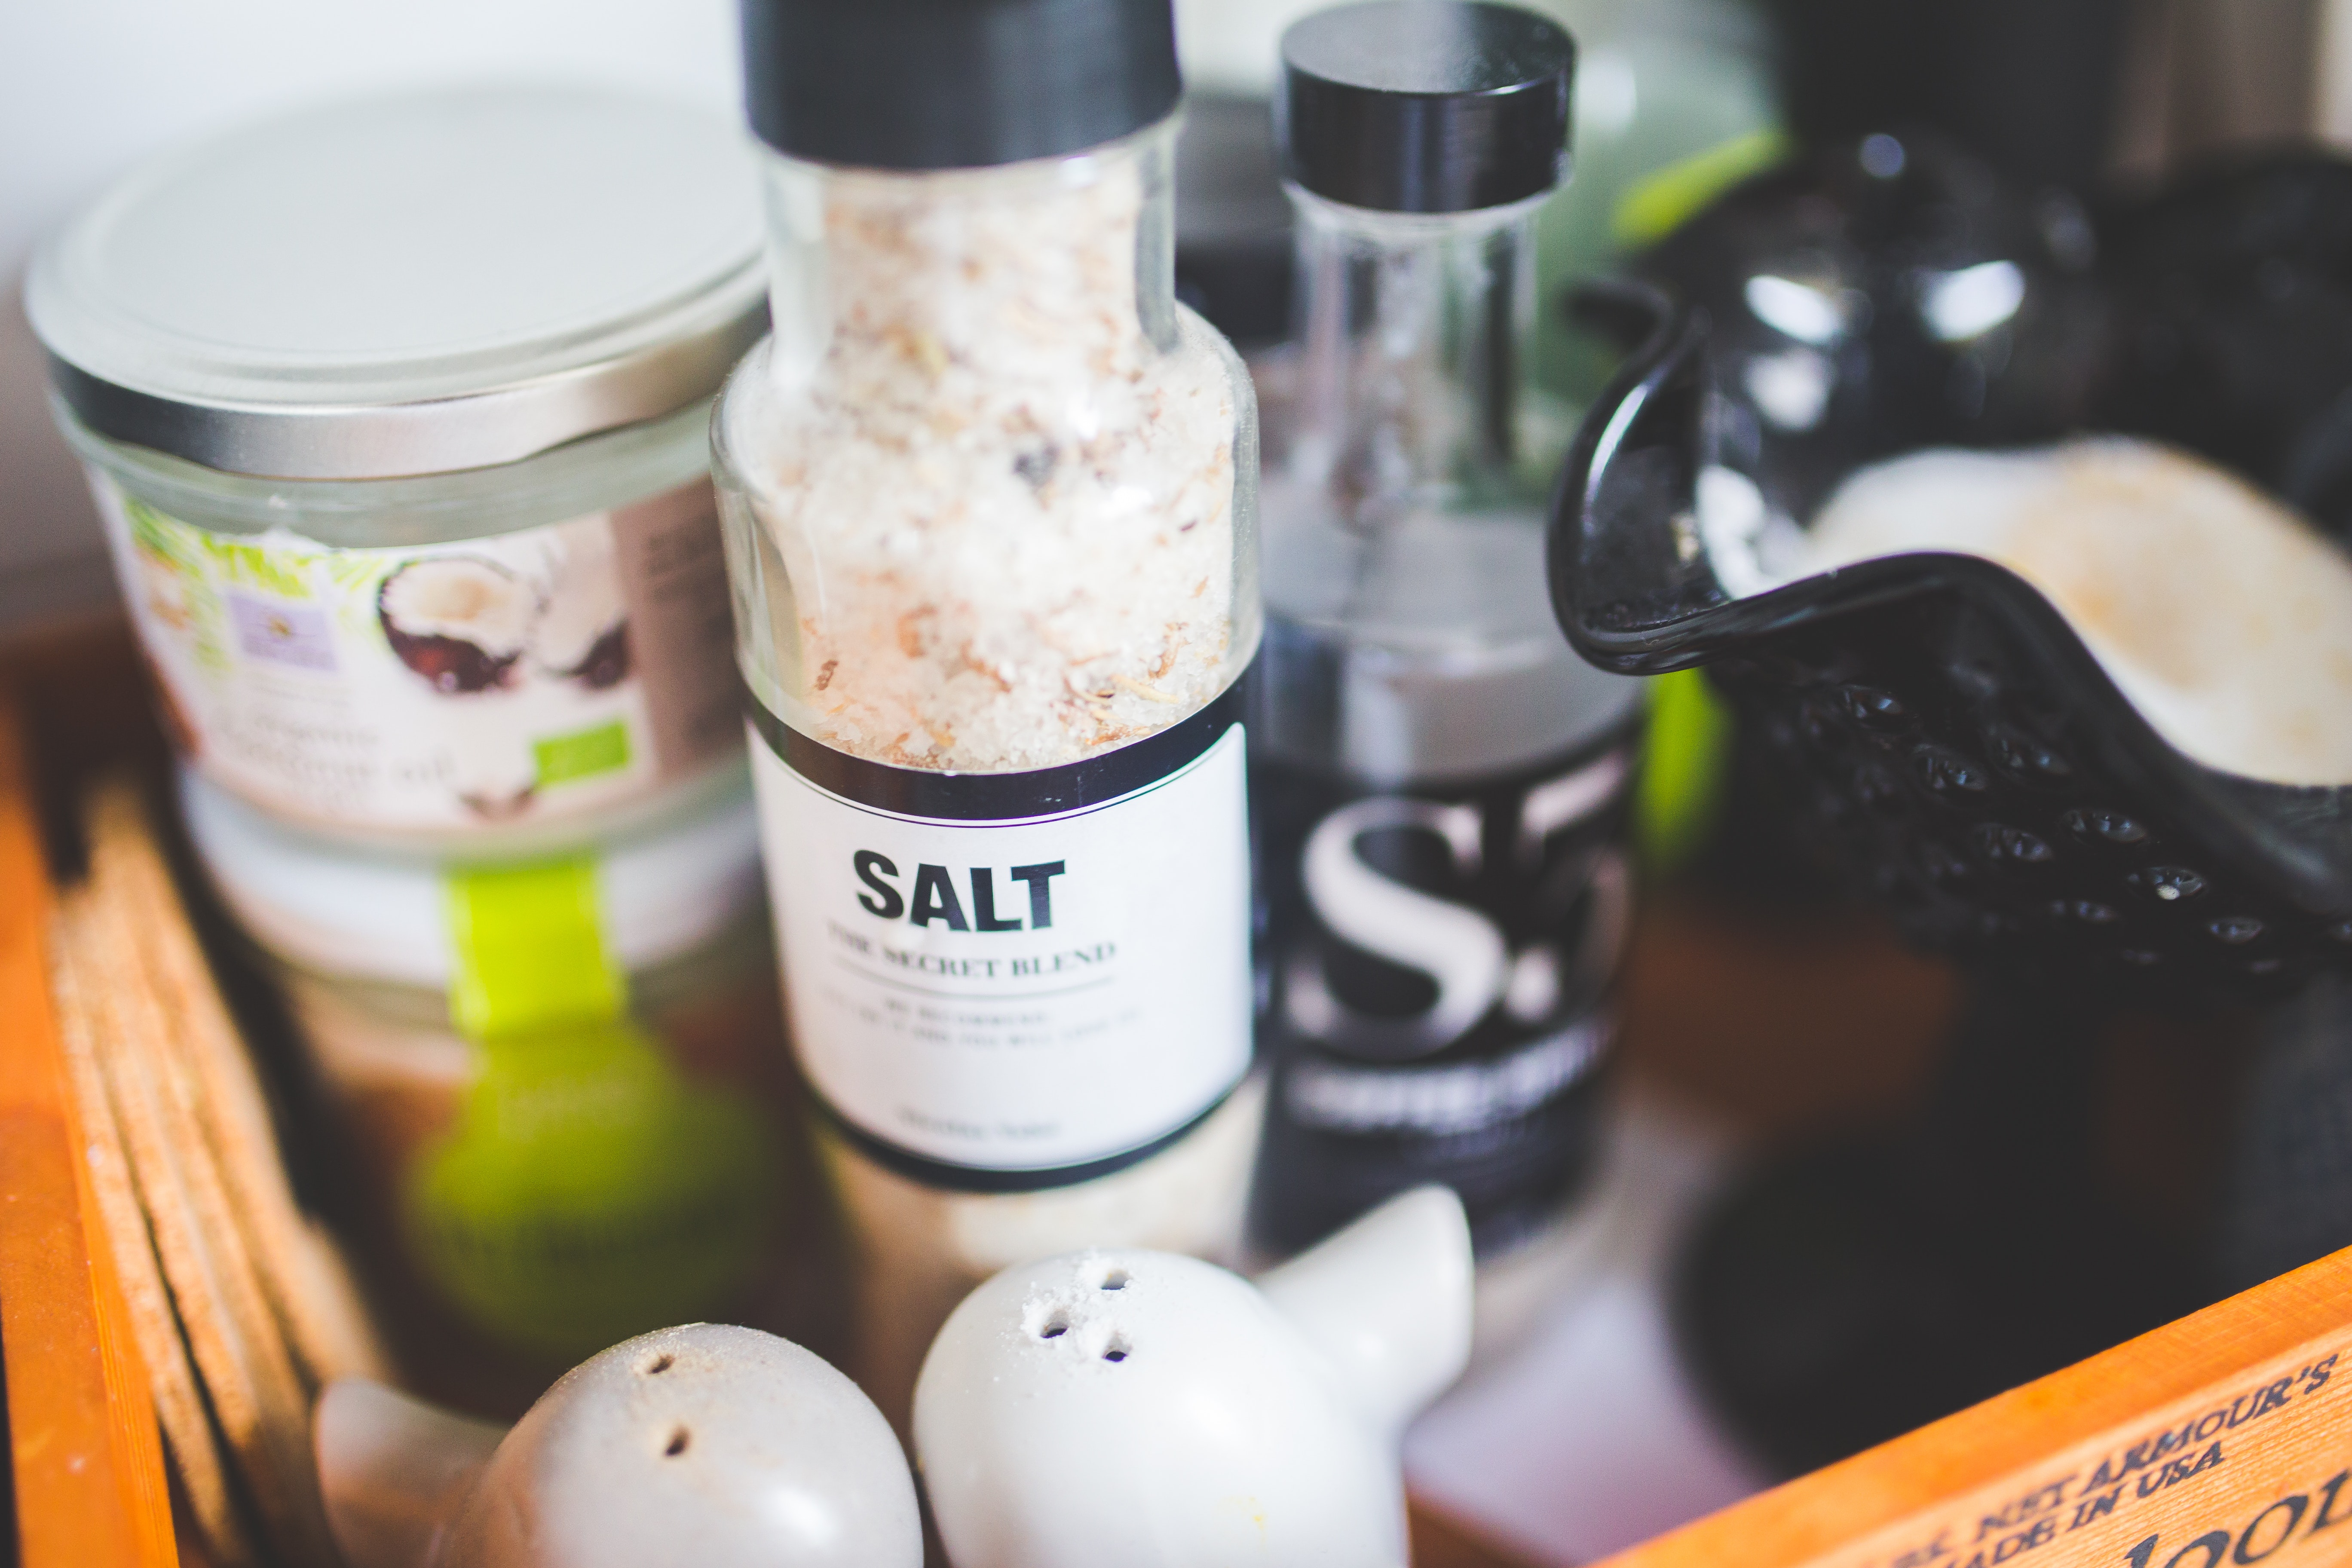 Bottle of Salt and other condiments